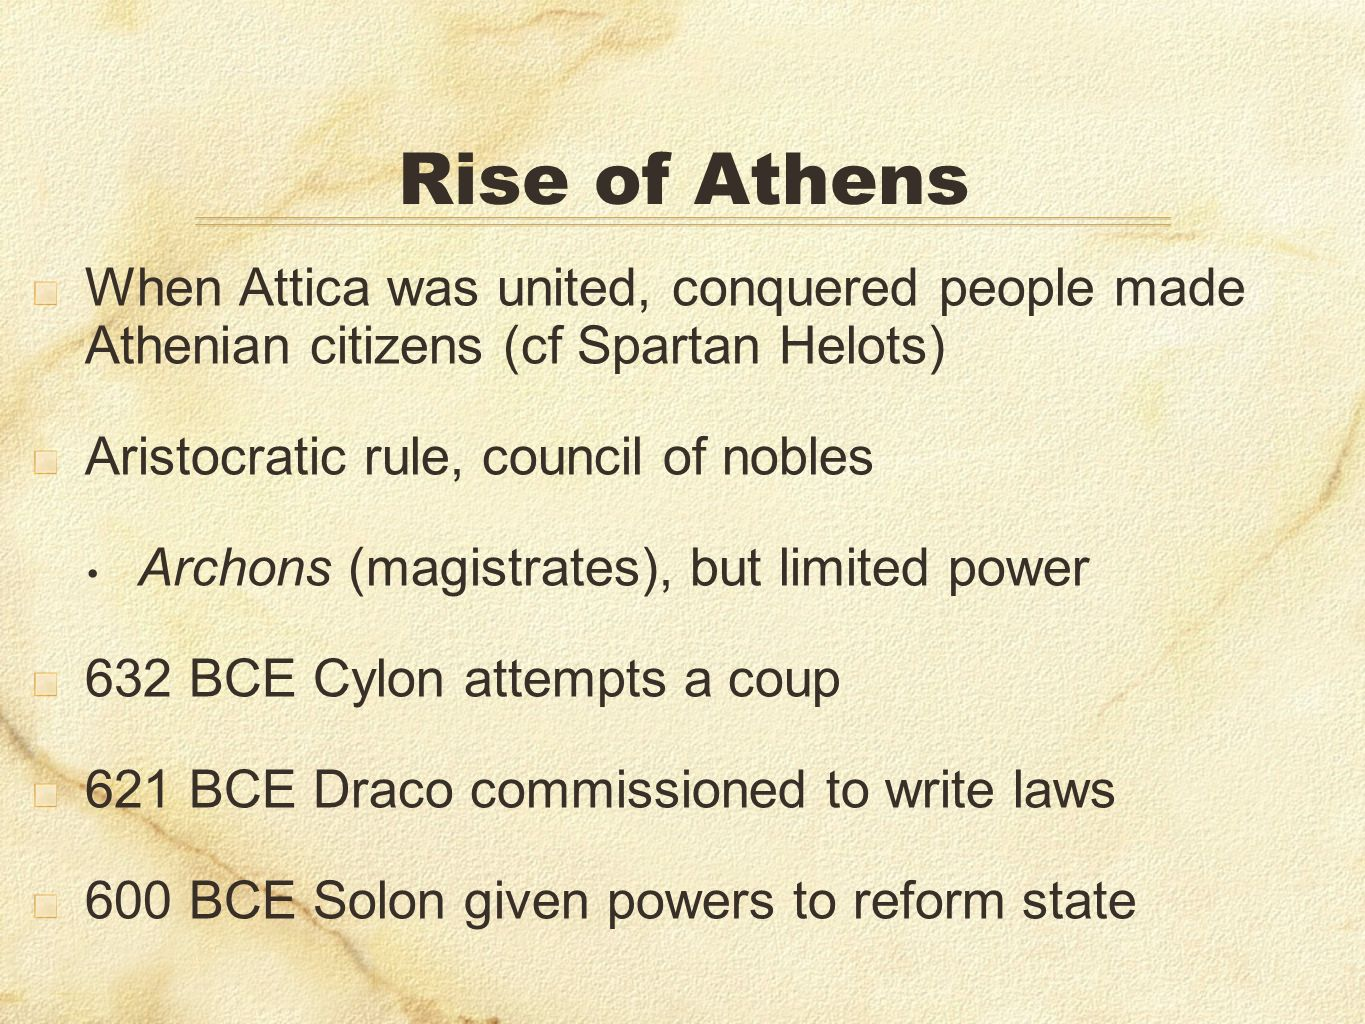 Rise of AthensWhen Attica was united, conquered people made Athenian citizens (cf Spartan Helots) Aristocratic rule, council of nobles.